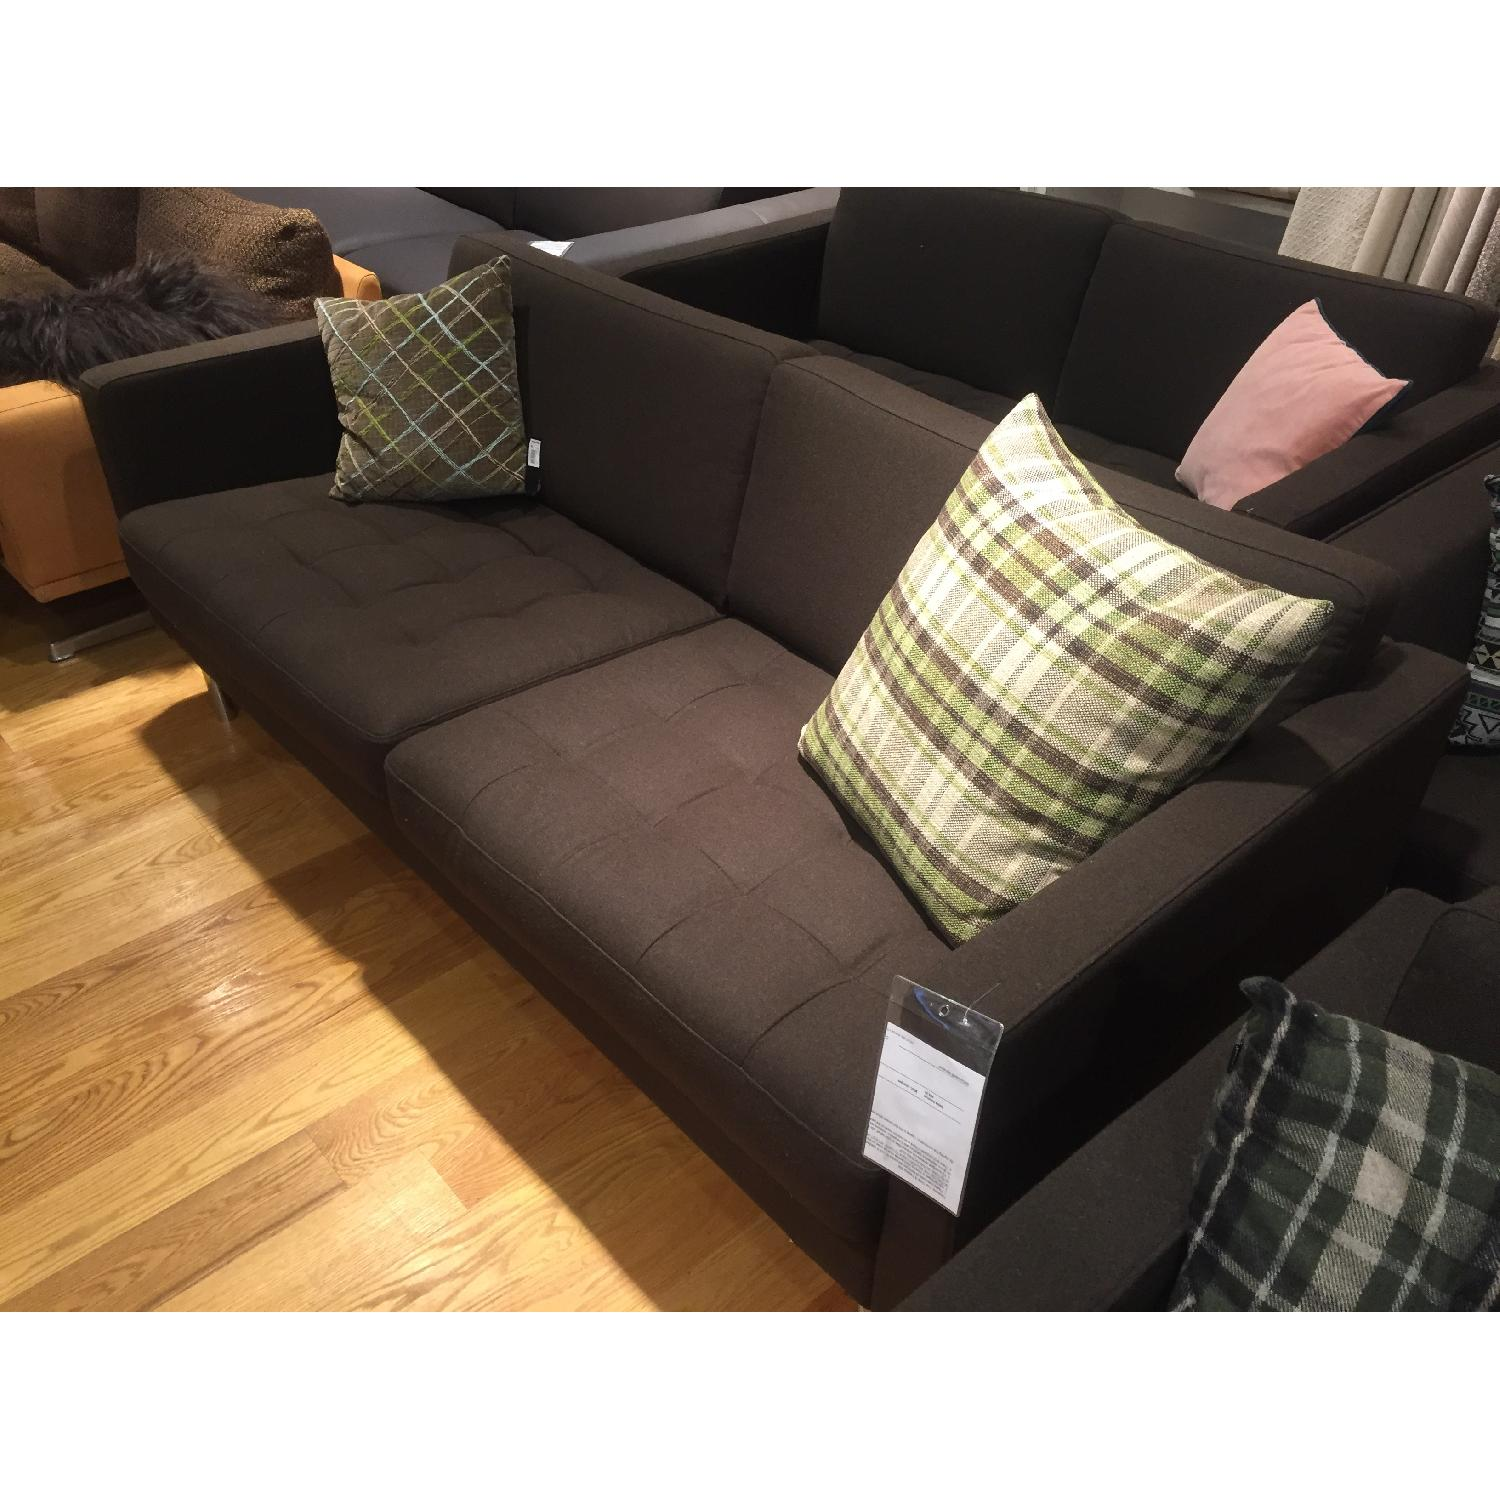 BoConcept Olympia Sofa in Chocolate Lux - image-4